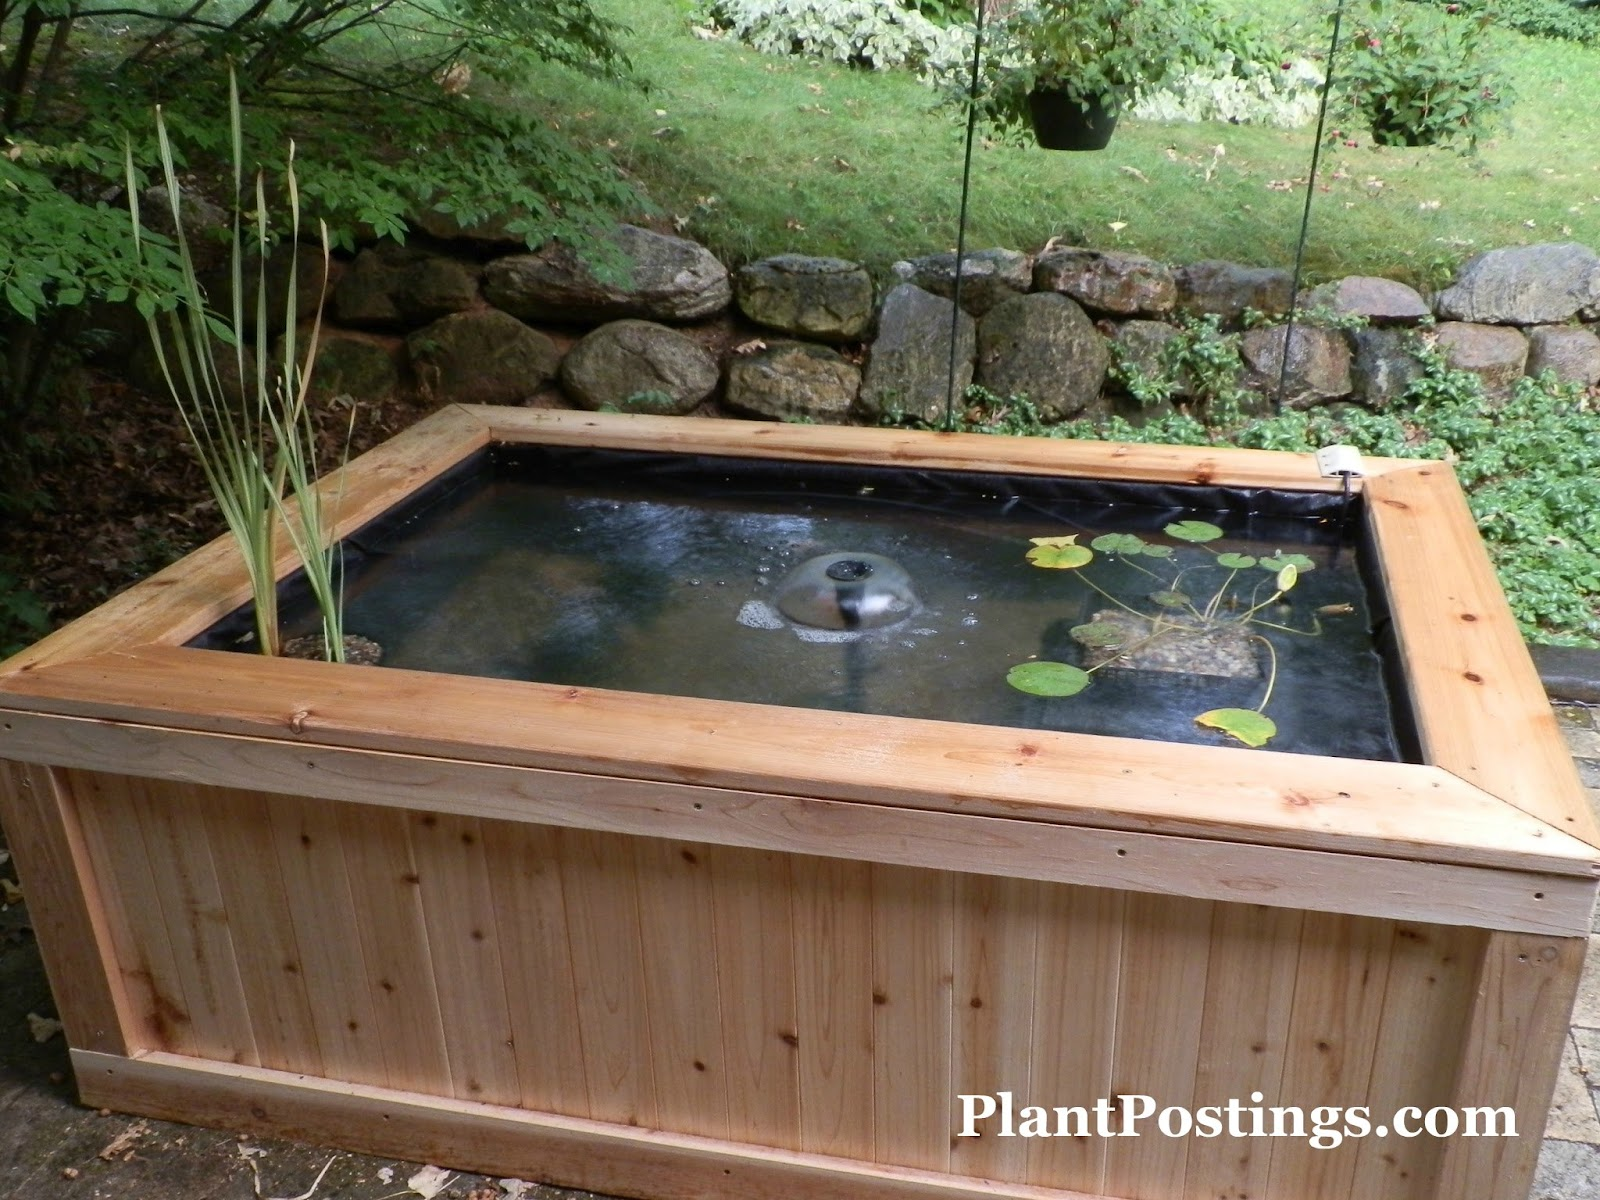 Plantpostings how to make an above ground pond for Raised koi pond ideas